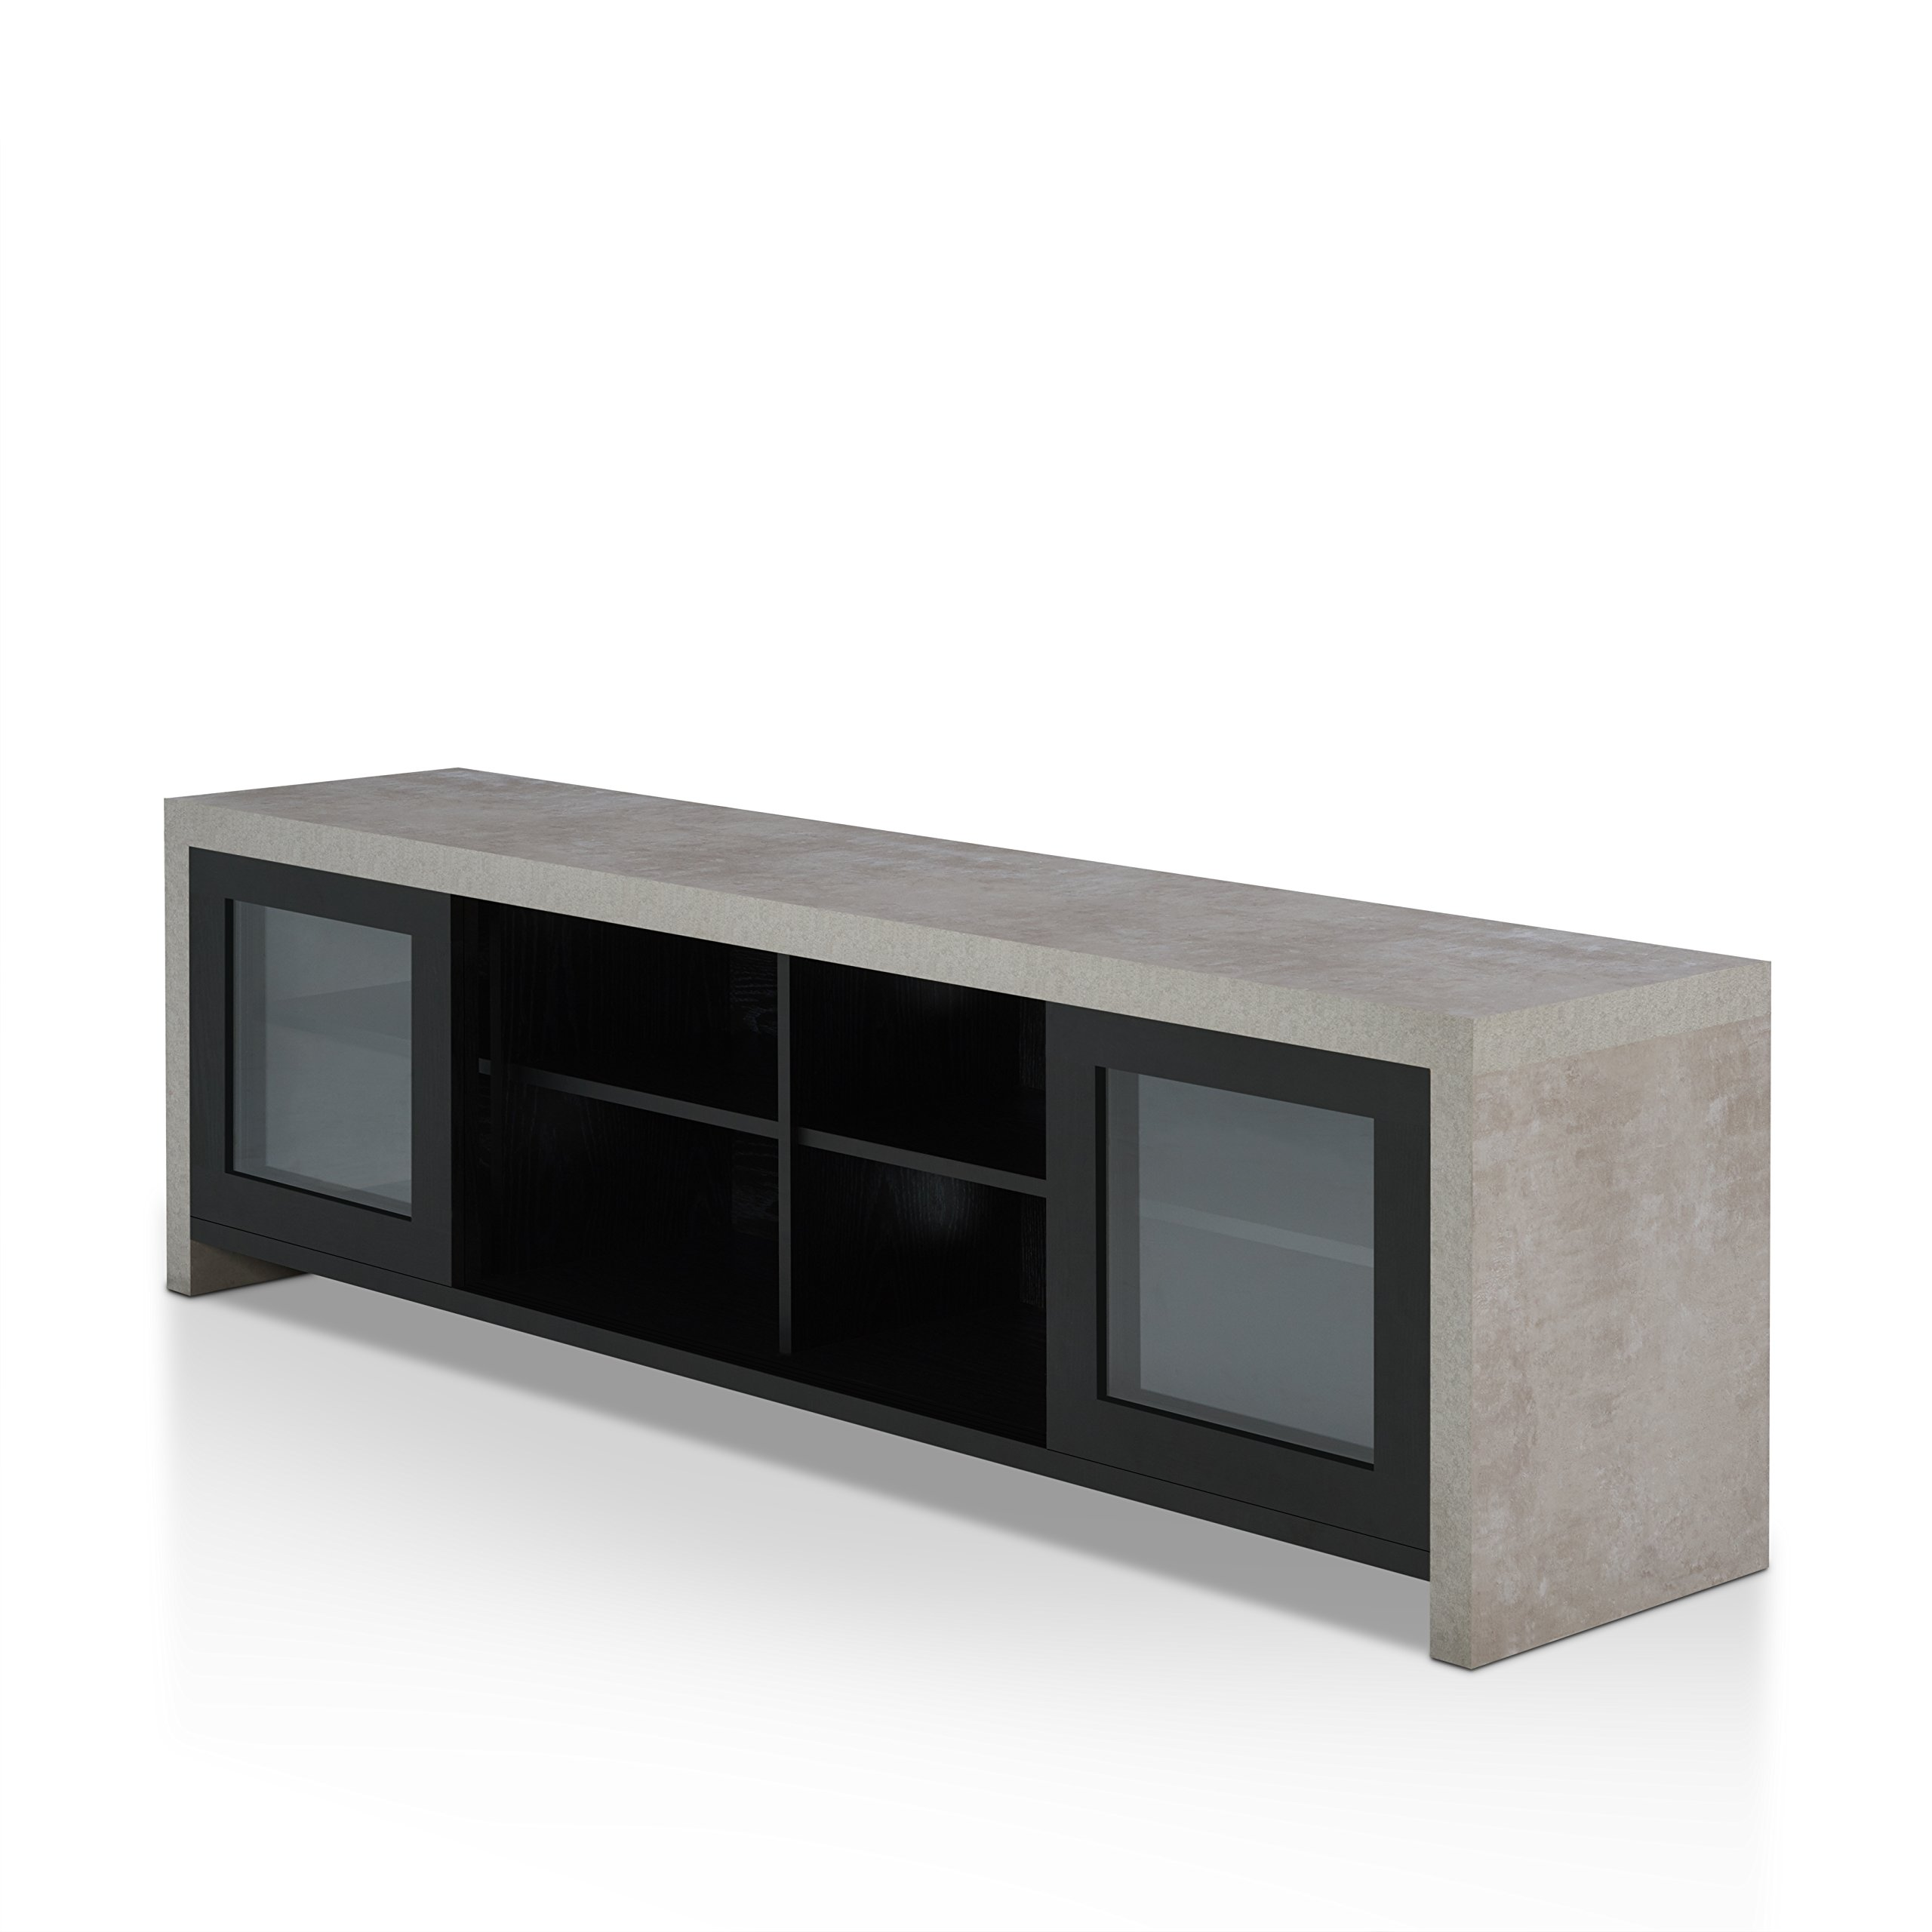 HOMES: Inside + Out FGI-1780C1 Vaice TV Stand Not Applicable, Black